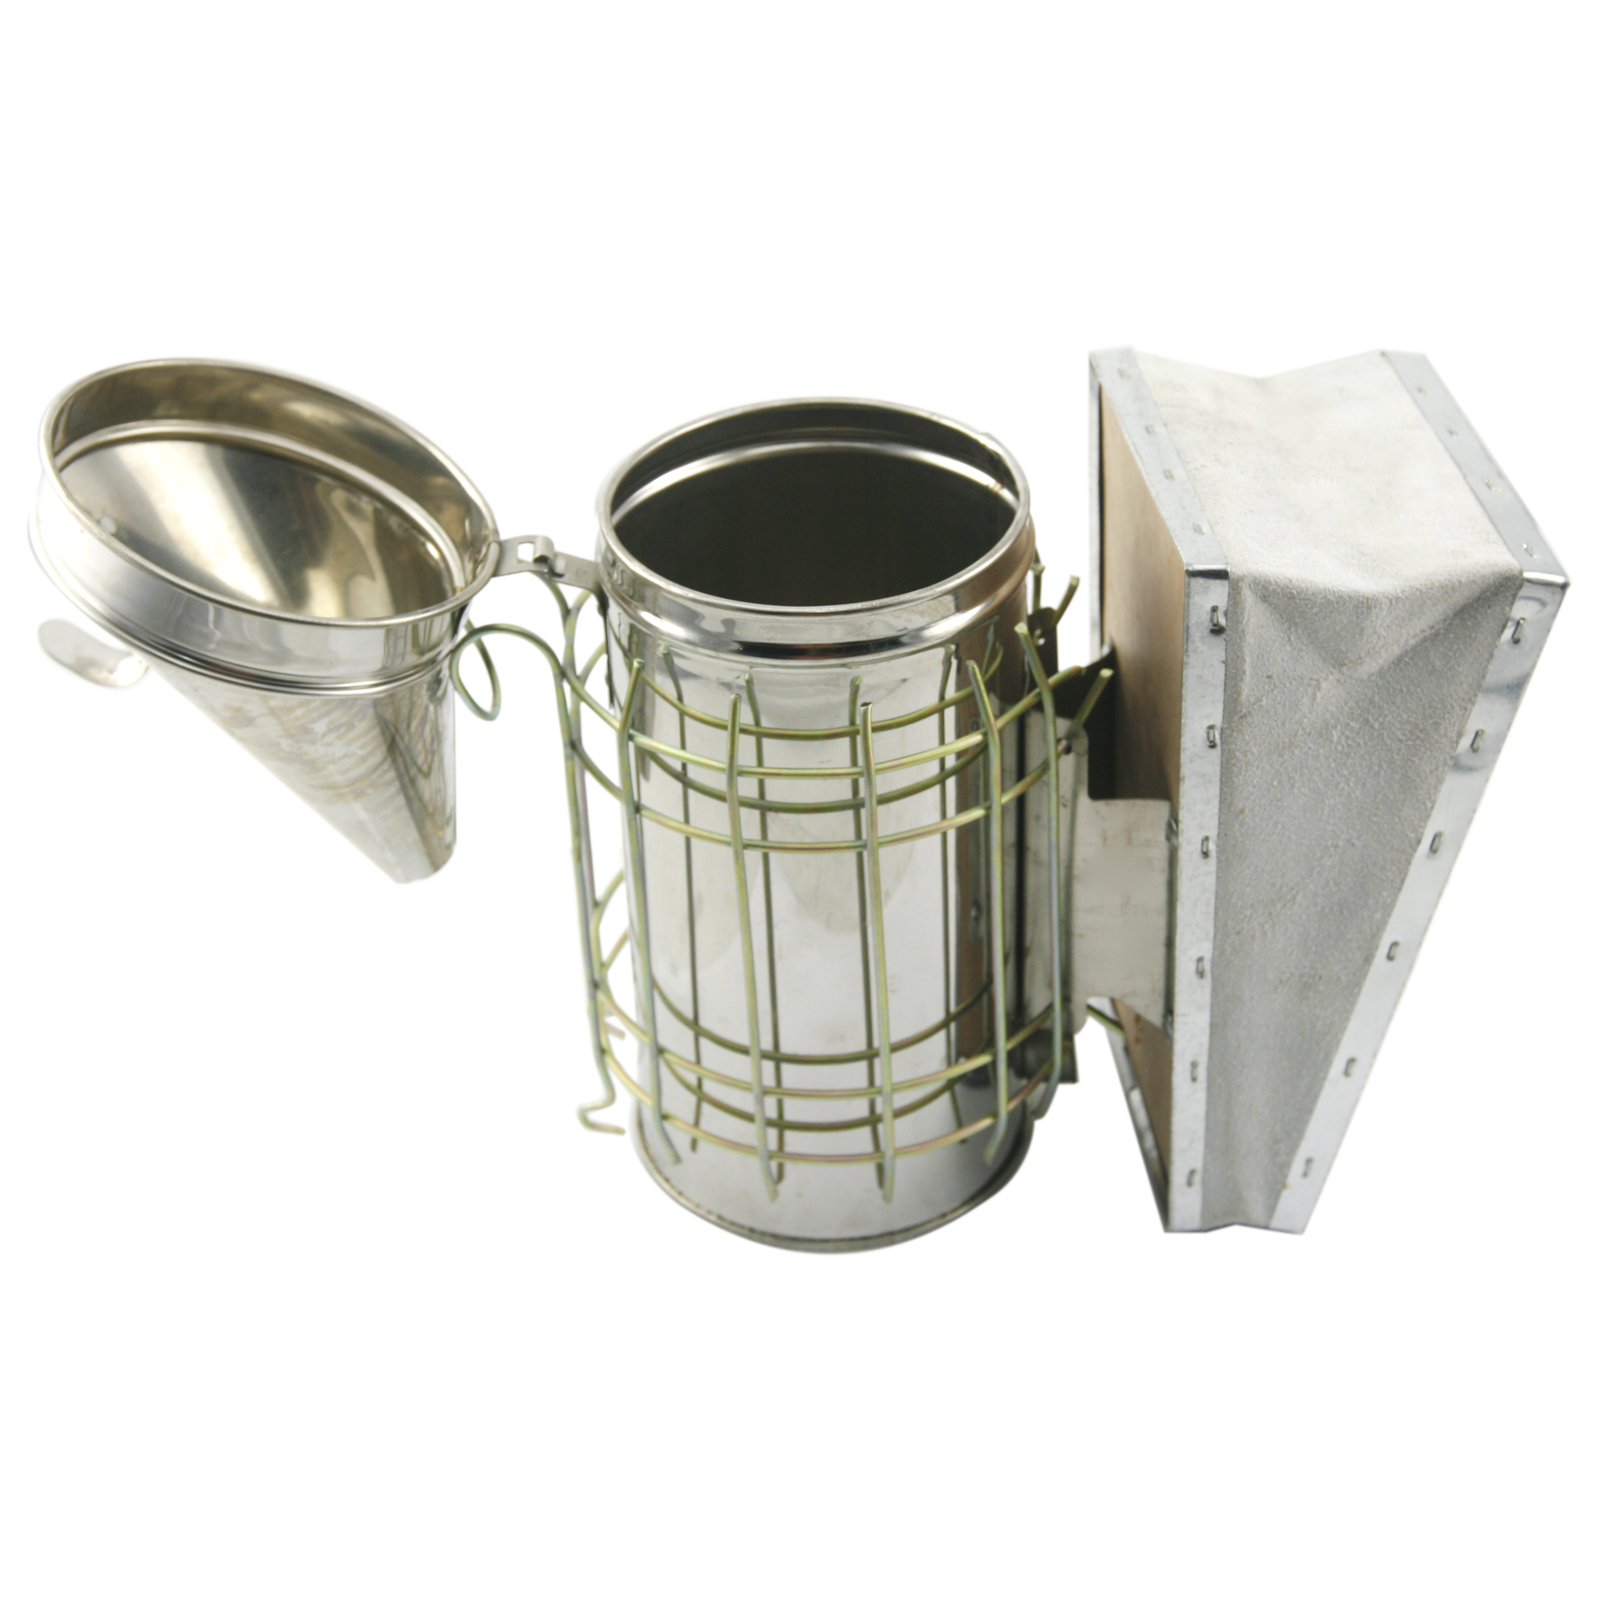 Bee Hive Smoker Stainless Steel with Heat Shield Protection Beekeeping Equipment by CO-Z